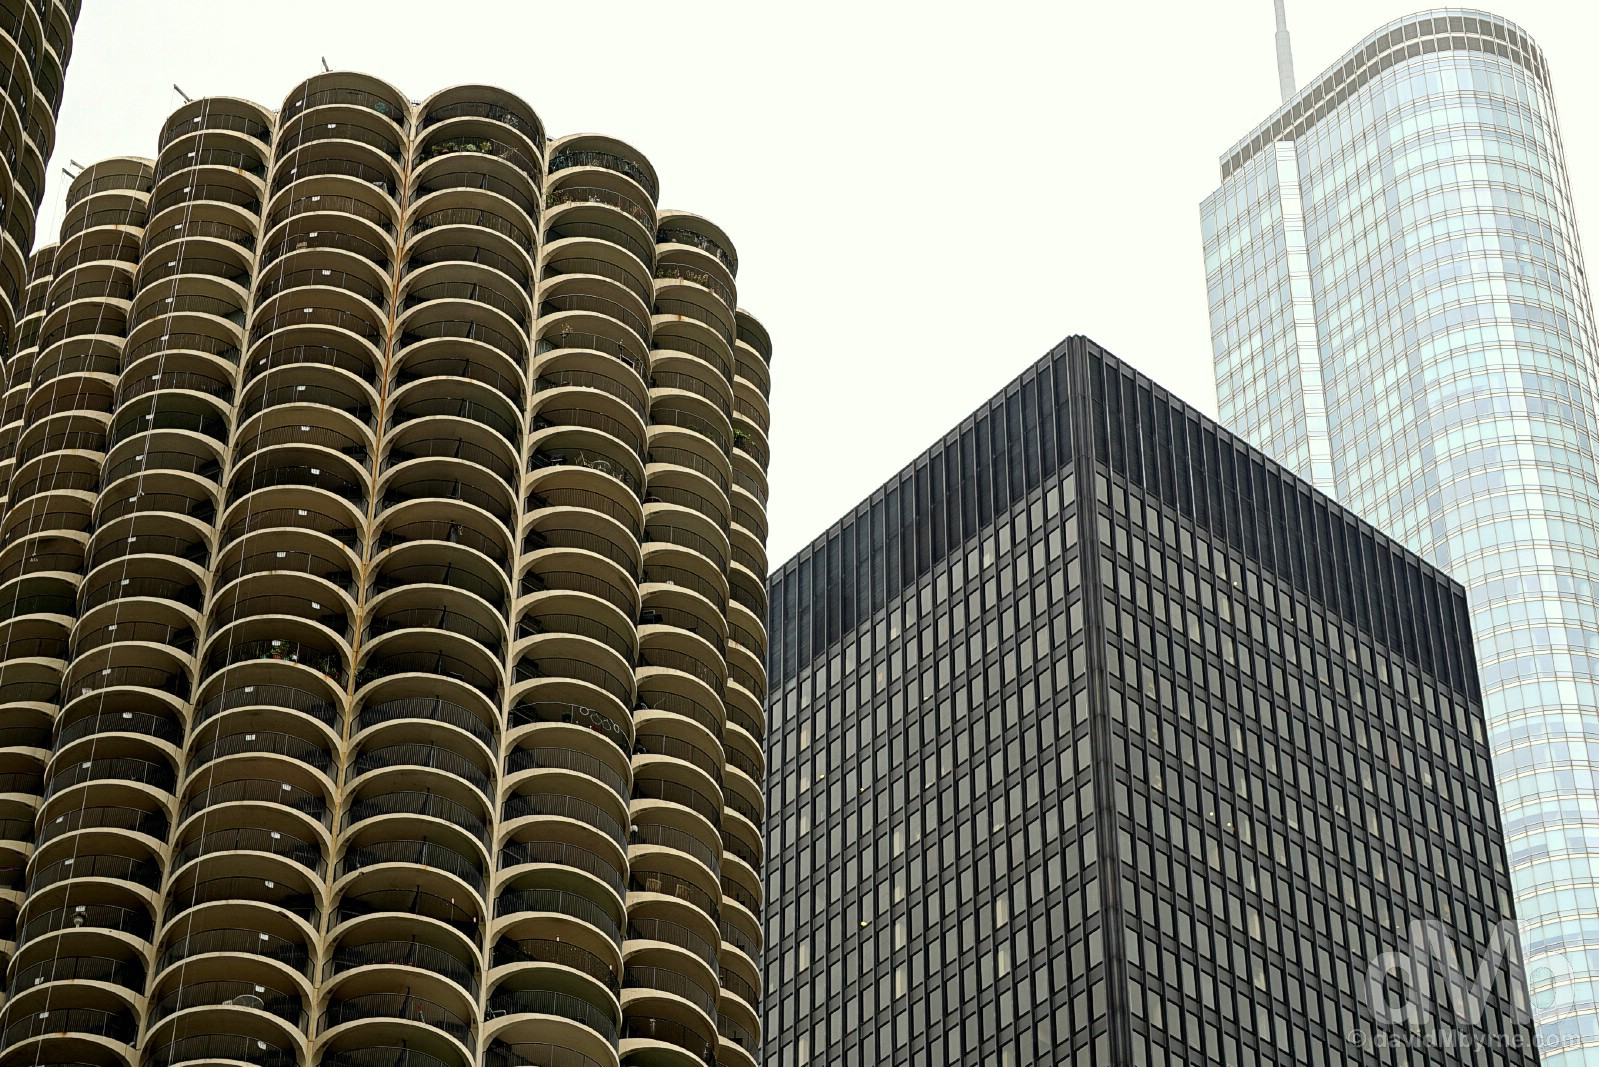 The towers of (L-R) Marina City, IBM Plaza & Trump International Hotel overlooking the Chicago River in downtown Chicago, Illinois, USA. October 2, 2016.